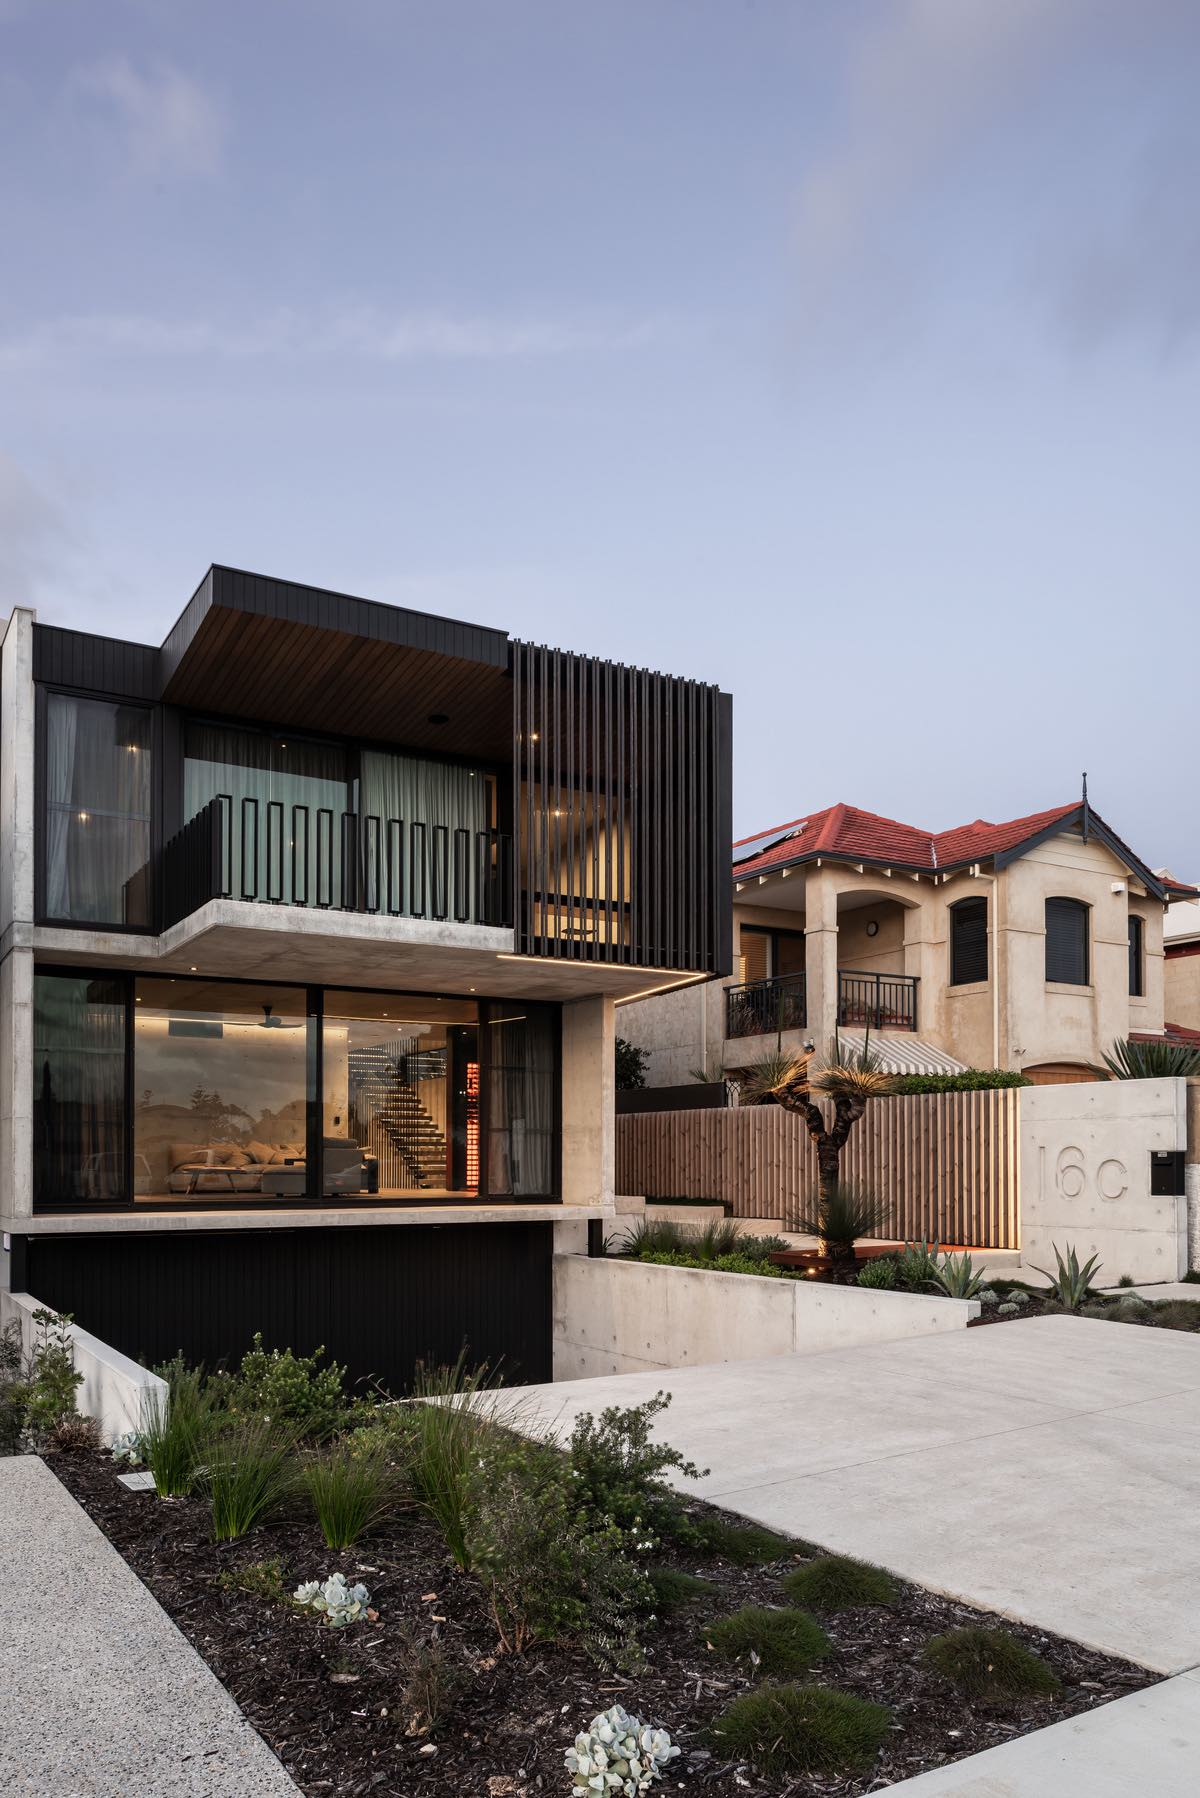 Vodka_Palace_Marcus_Browne_architect_AmazingArchitecture_Australia_004.jpg